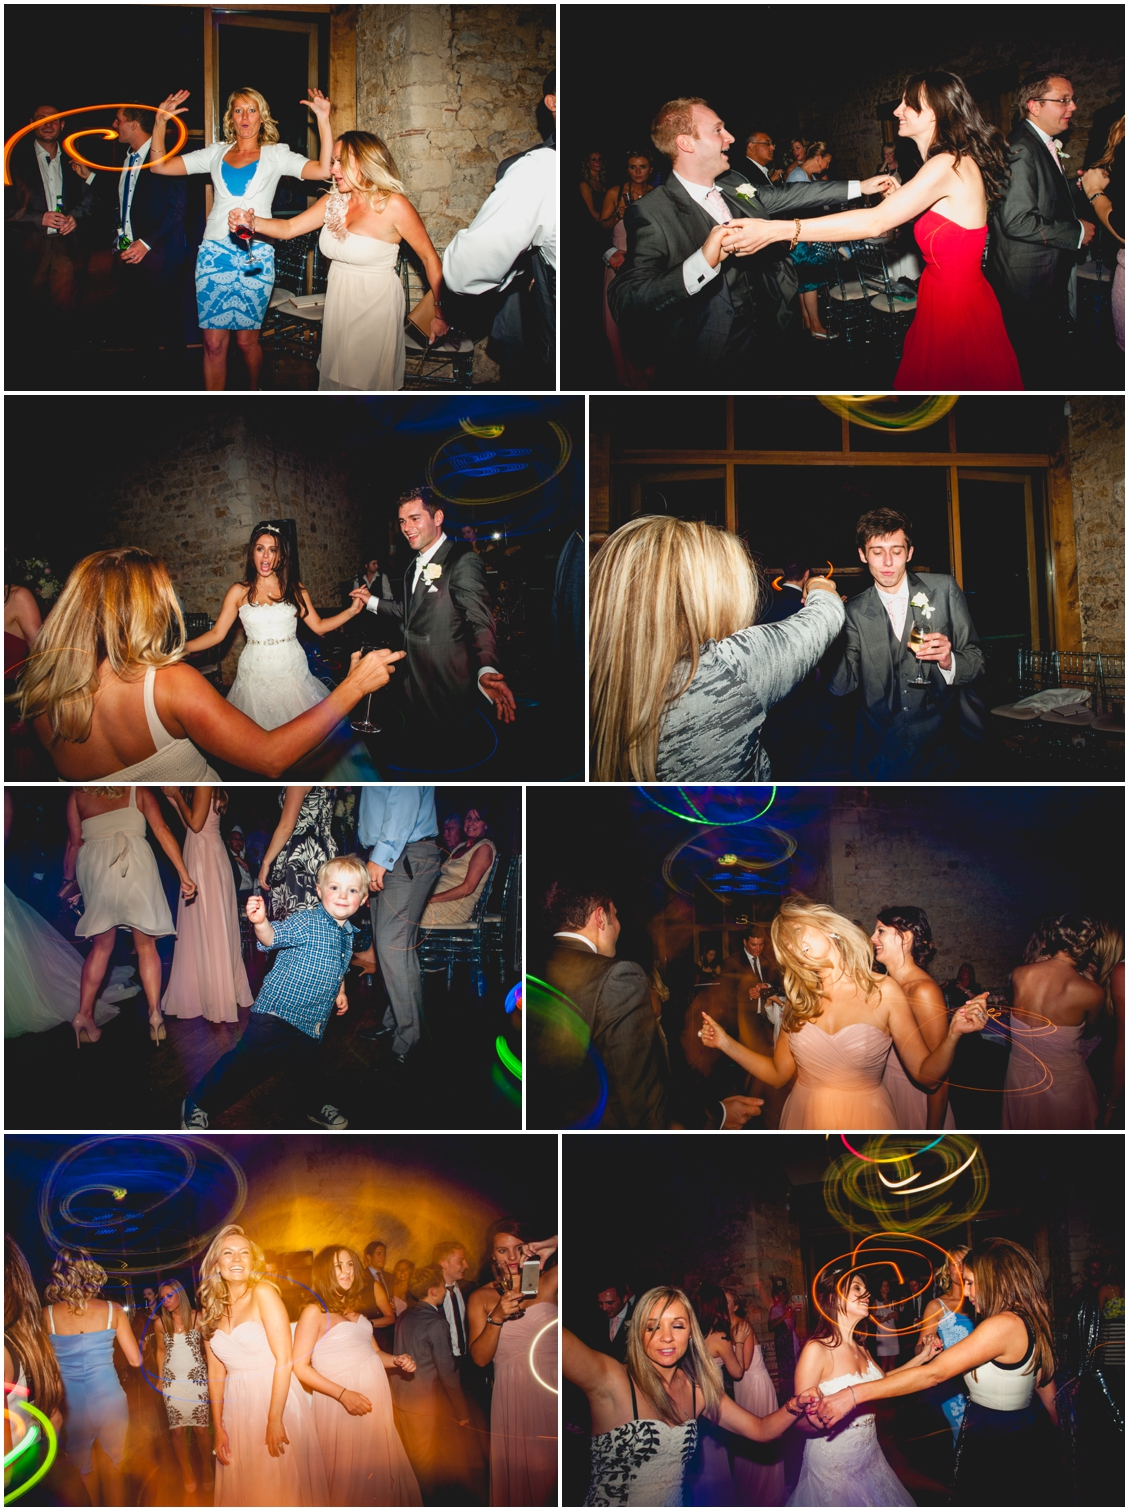 Notley Abbey, dancing, Wedding Photography, Lisa Carpenter Photography, photos, Oxfordshire, West Midlands